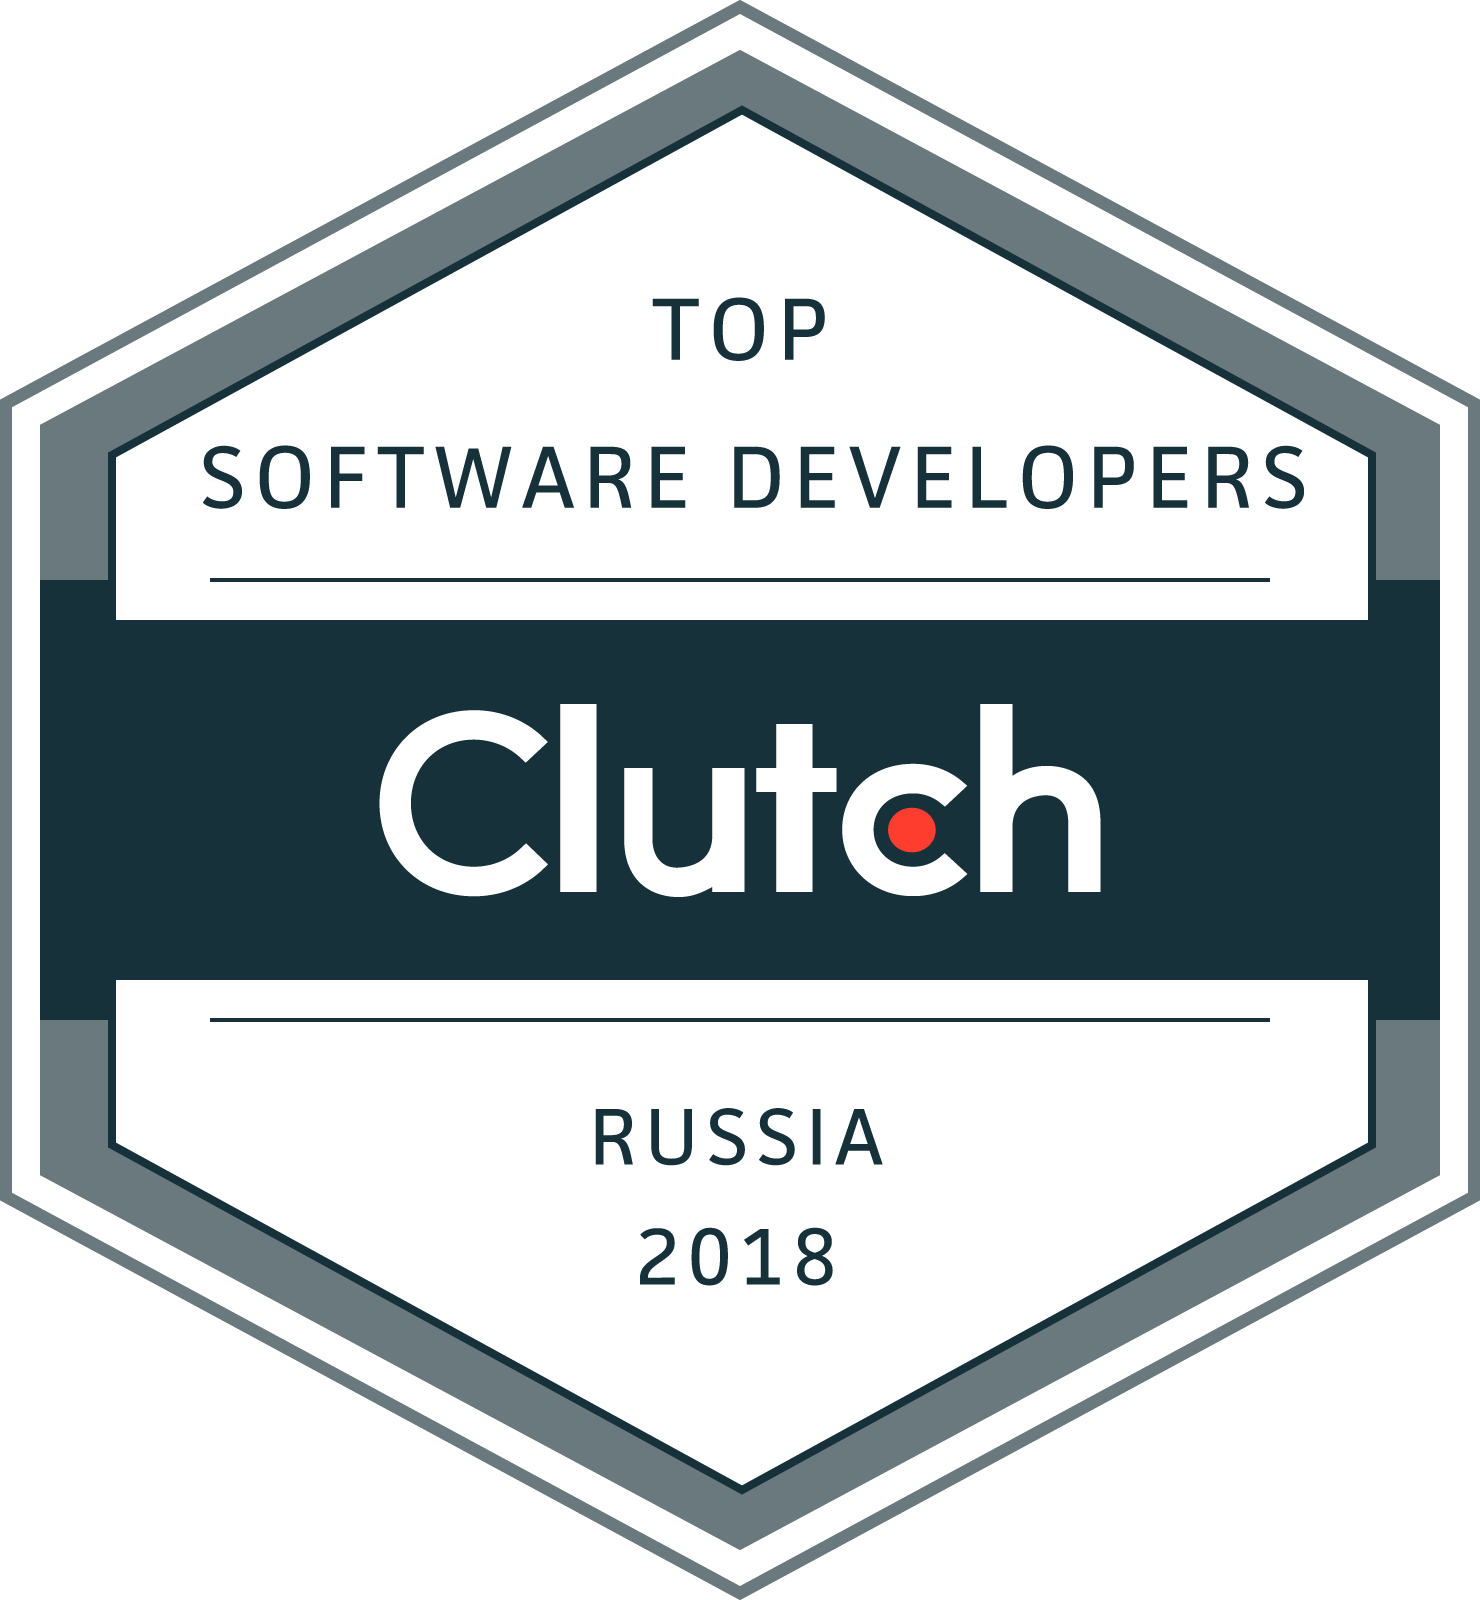 Software Developers Russia Clutch 2018